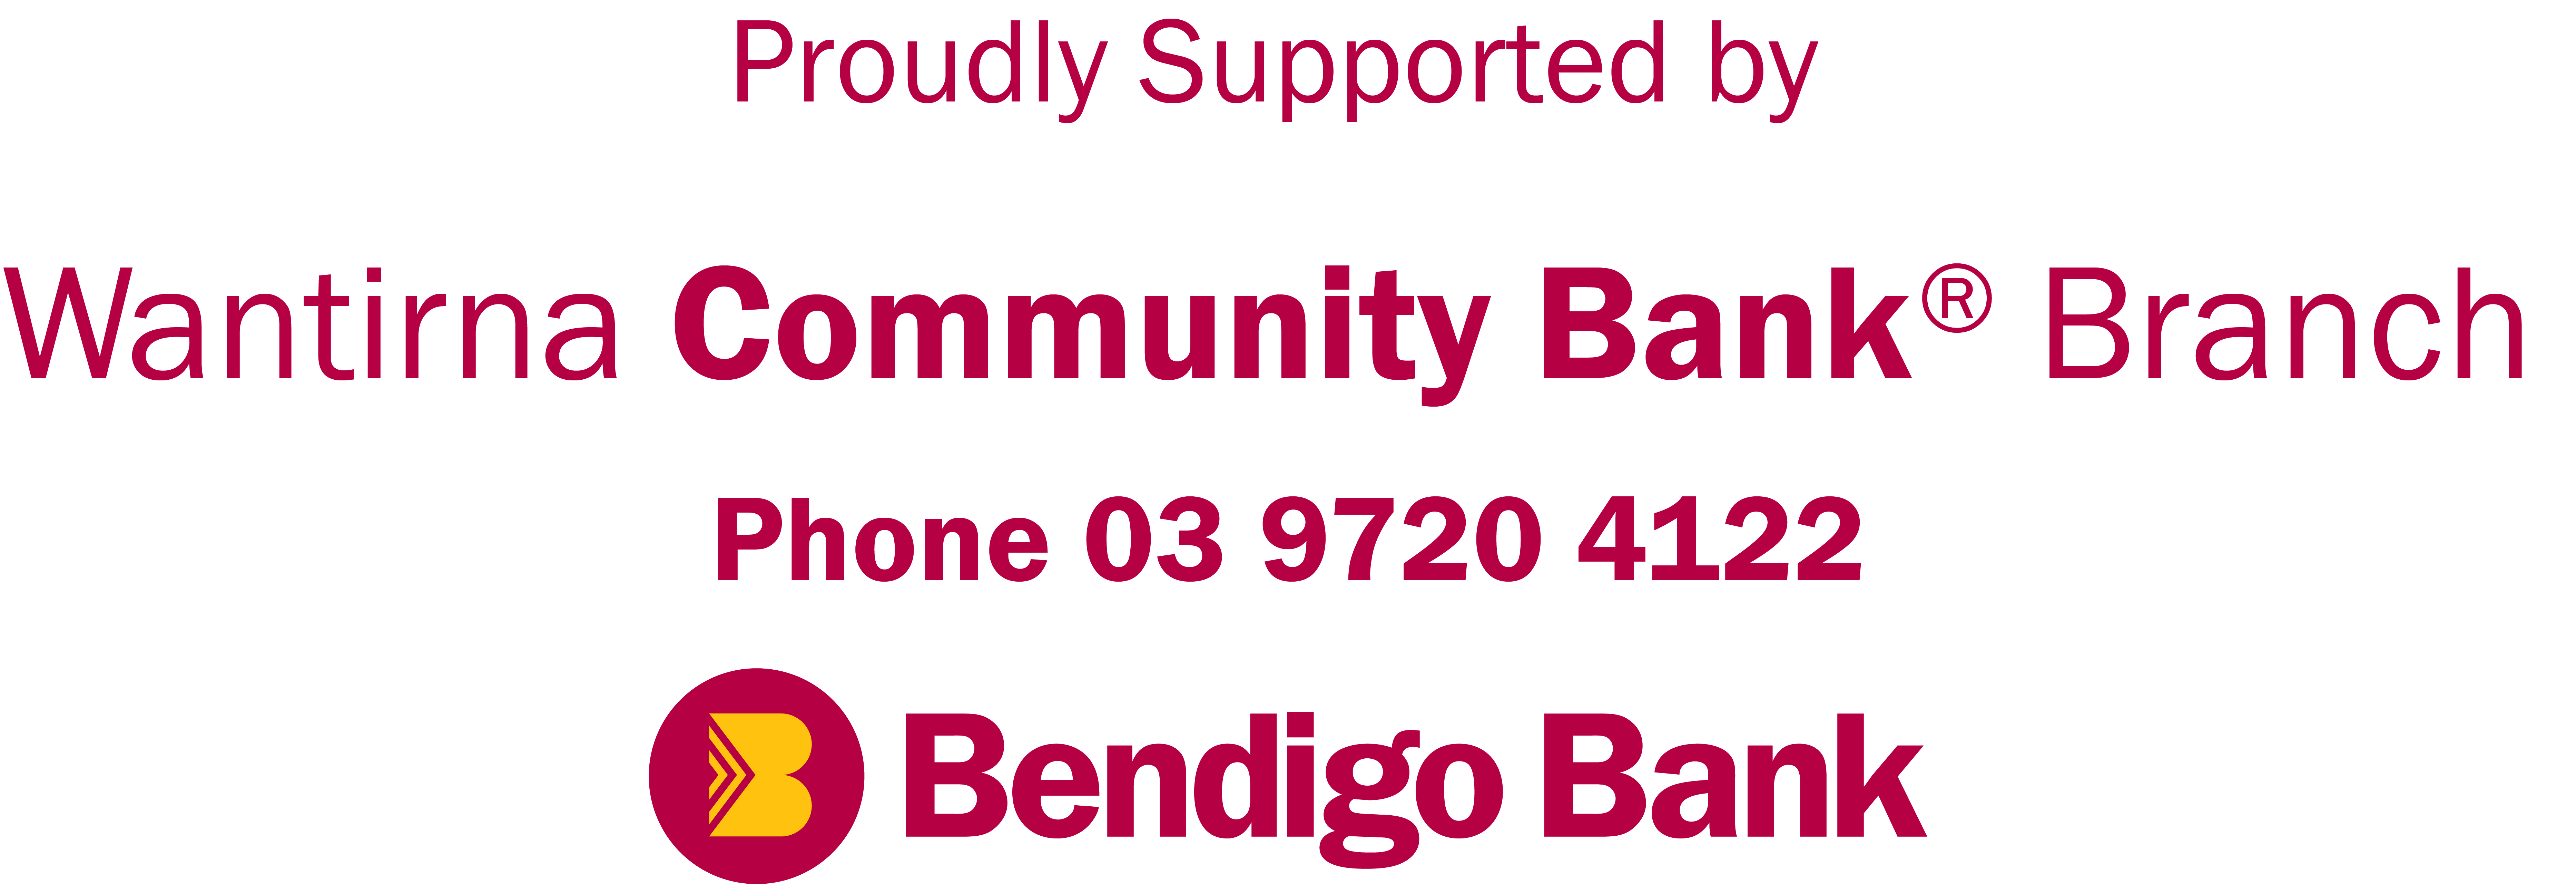 Bendigo Bank Wantirna